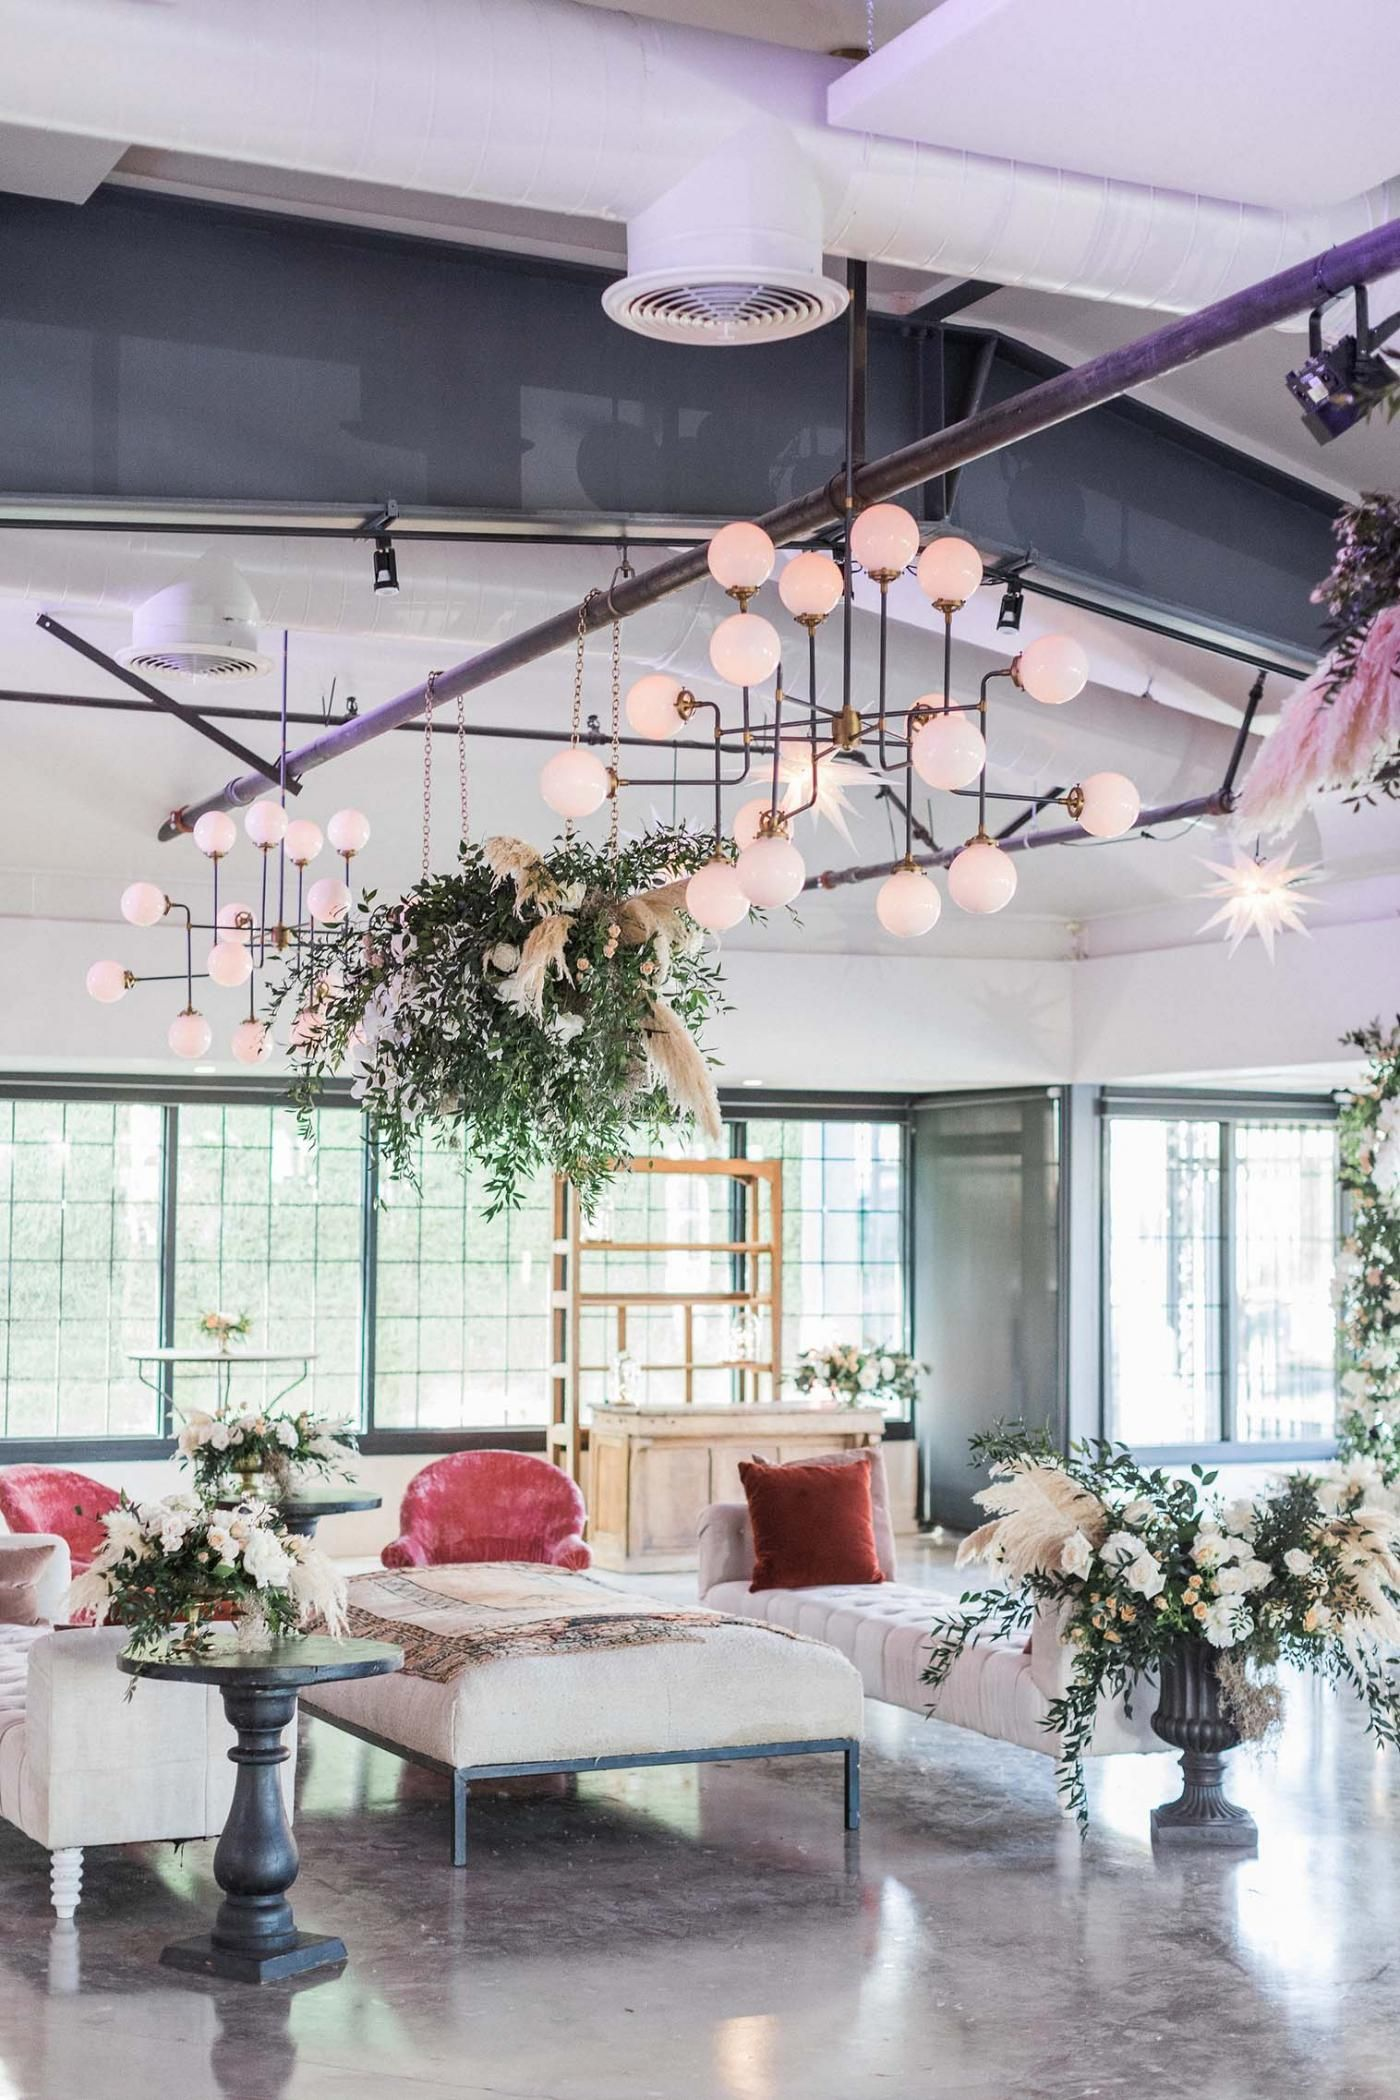 How This Creative Community Hosted a Celestial Celebration